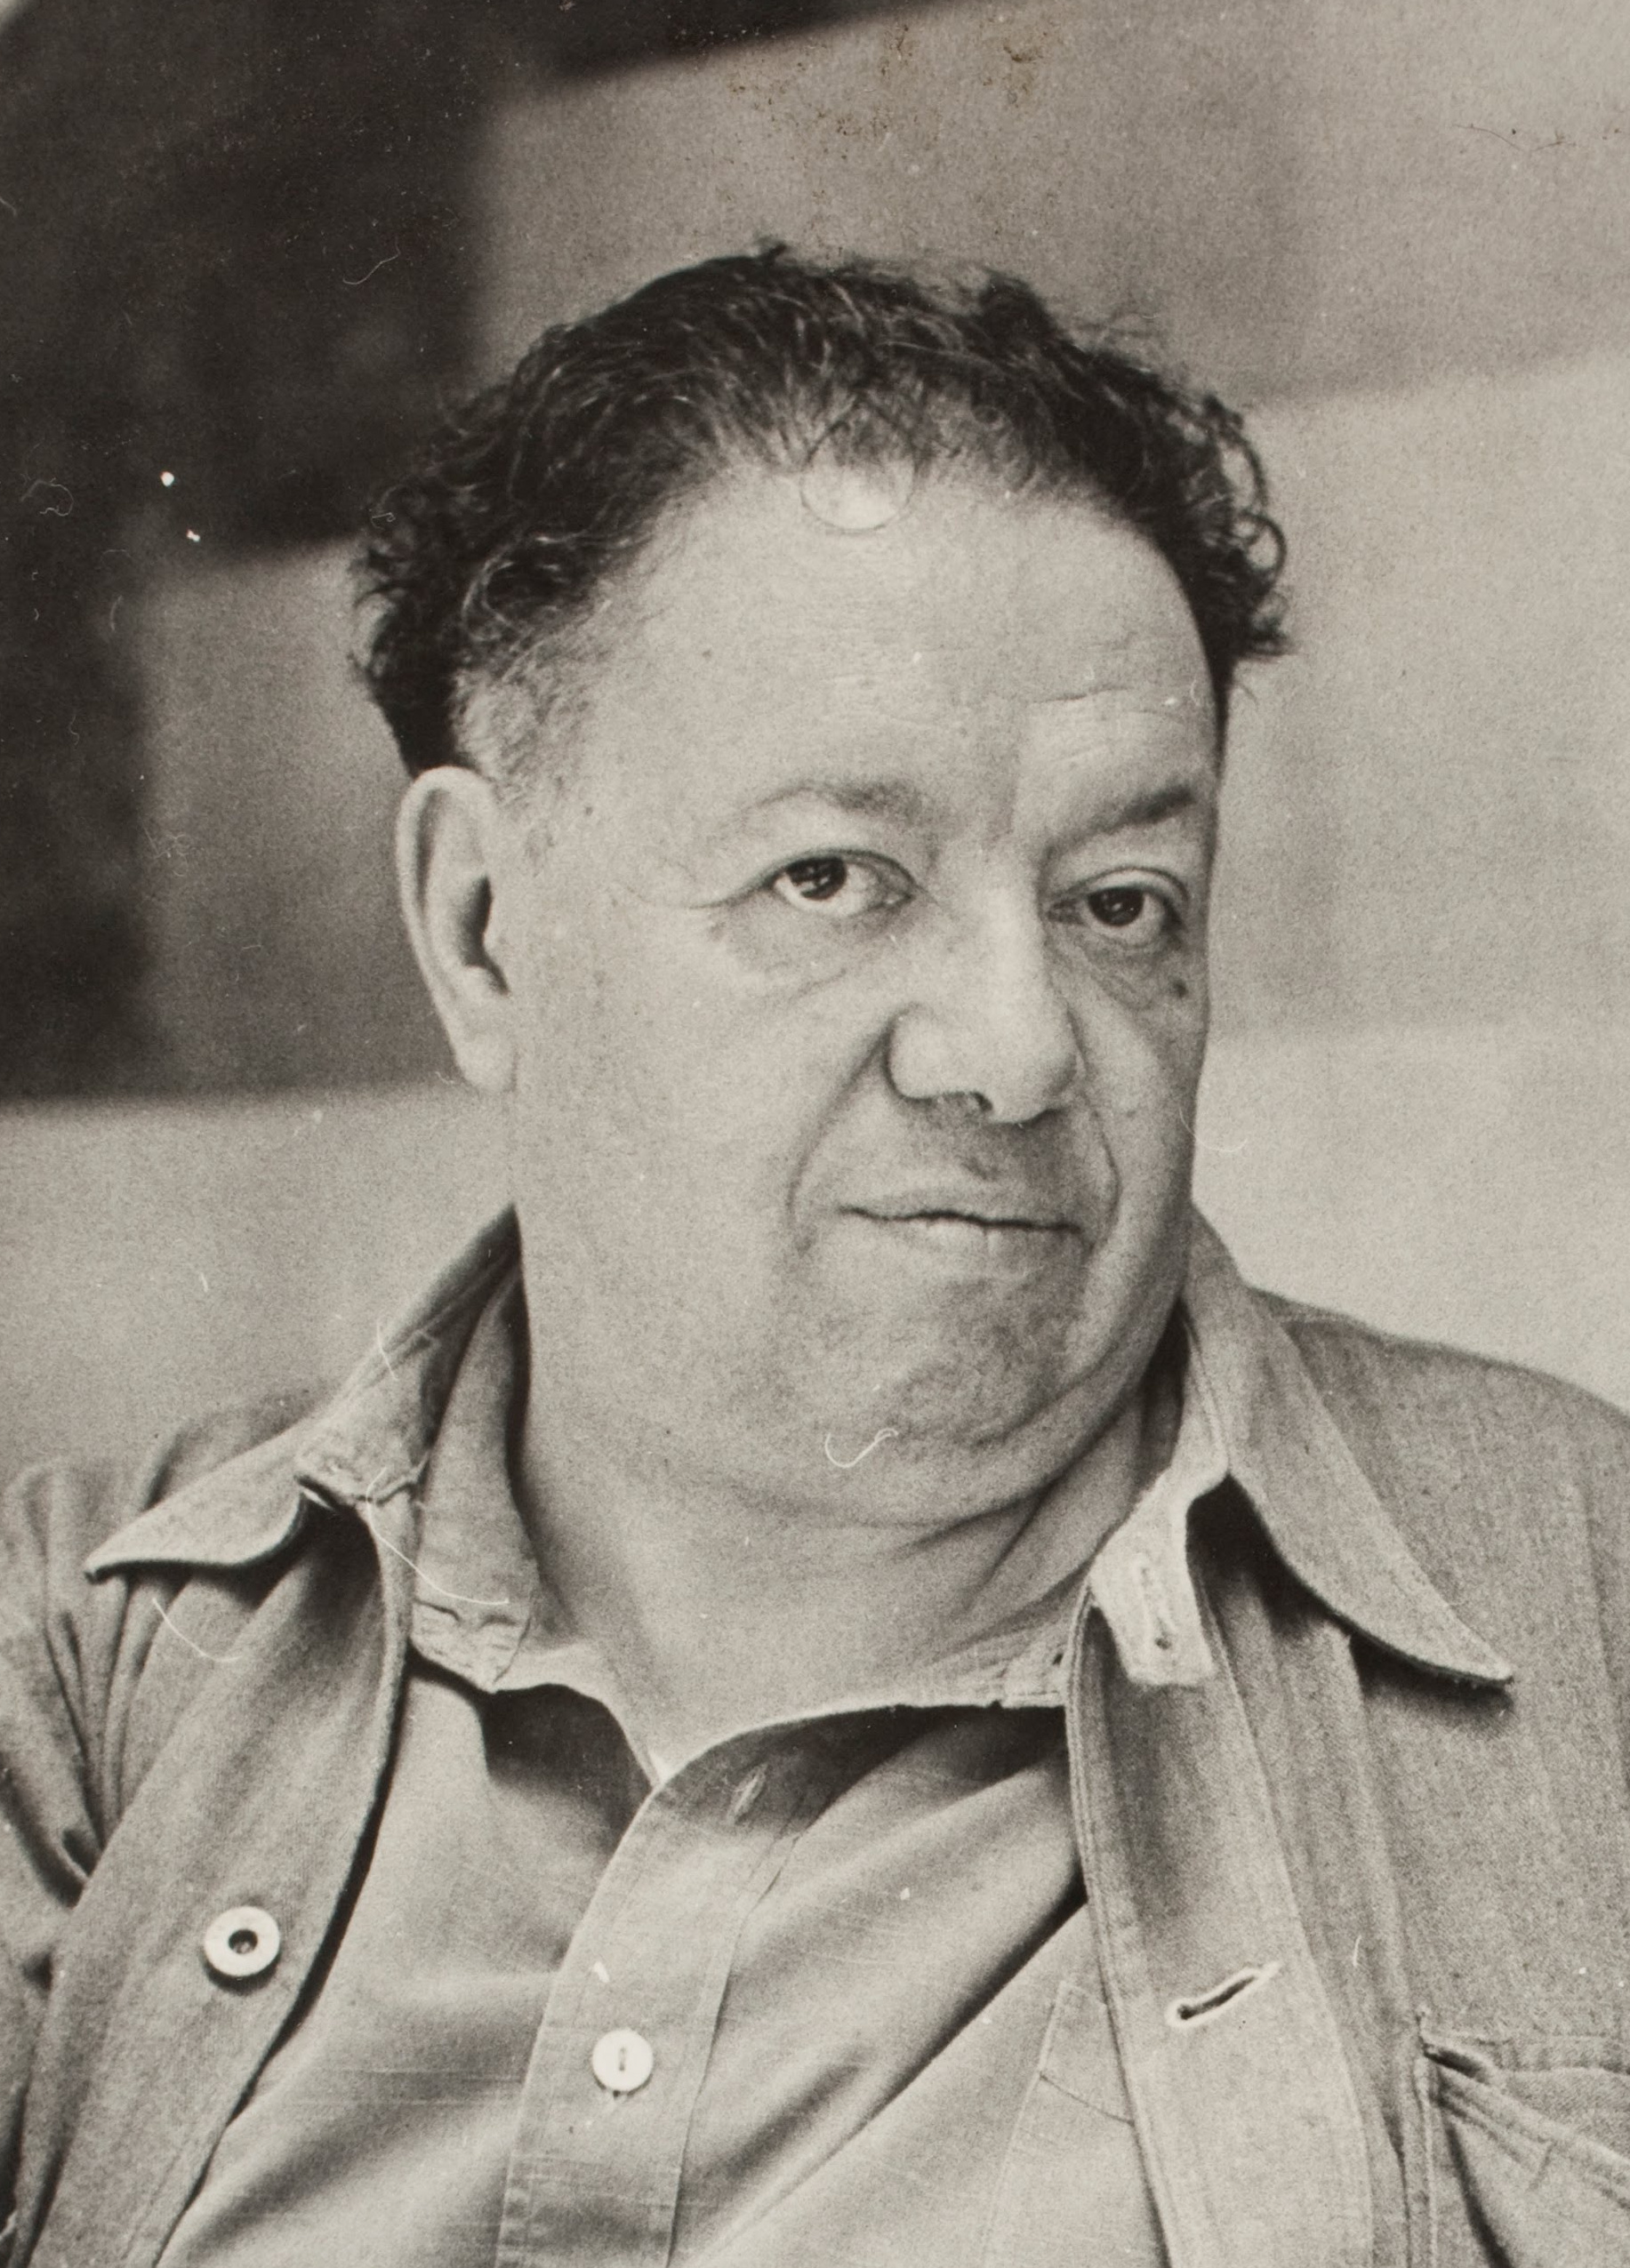 Image of Diego Rivera from Wikidata